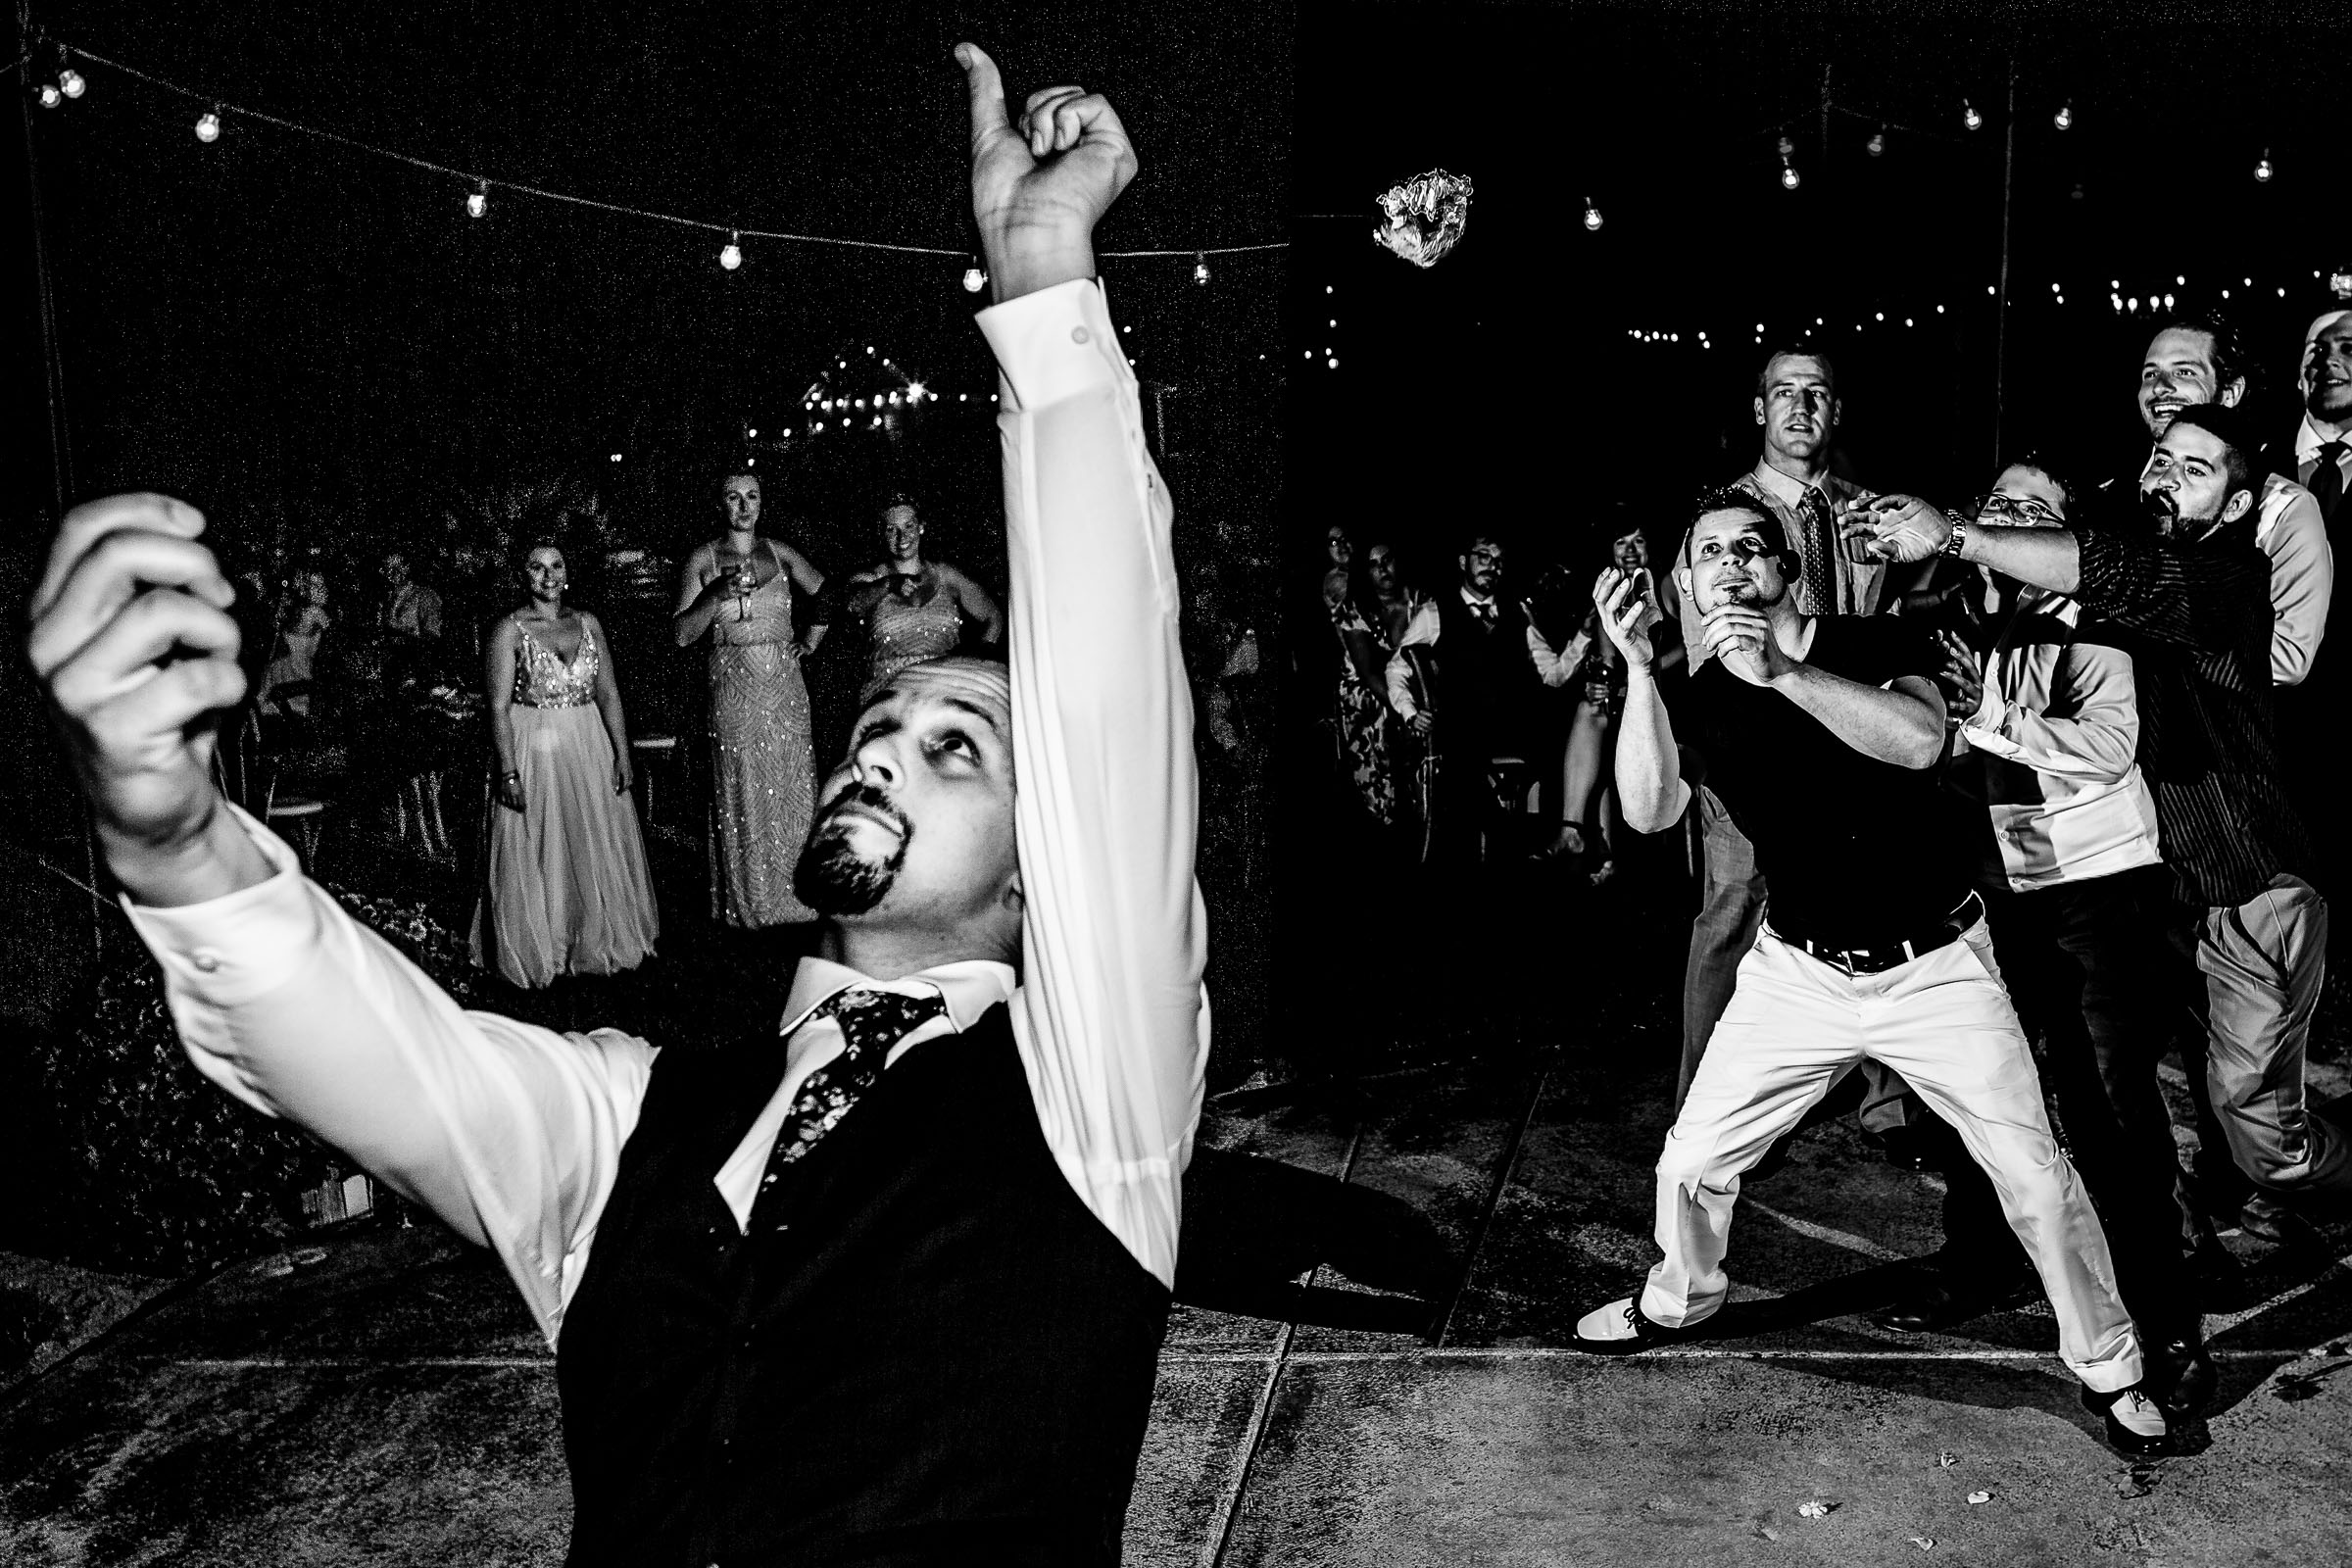 A great photo of a groom throwing the garter during a Postlewait's Country wedding located in the heart of the Willamette Valley between Portland and Salem near Aurora, Oregon